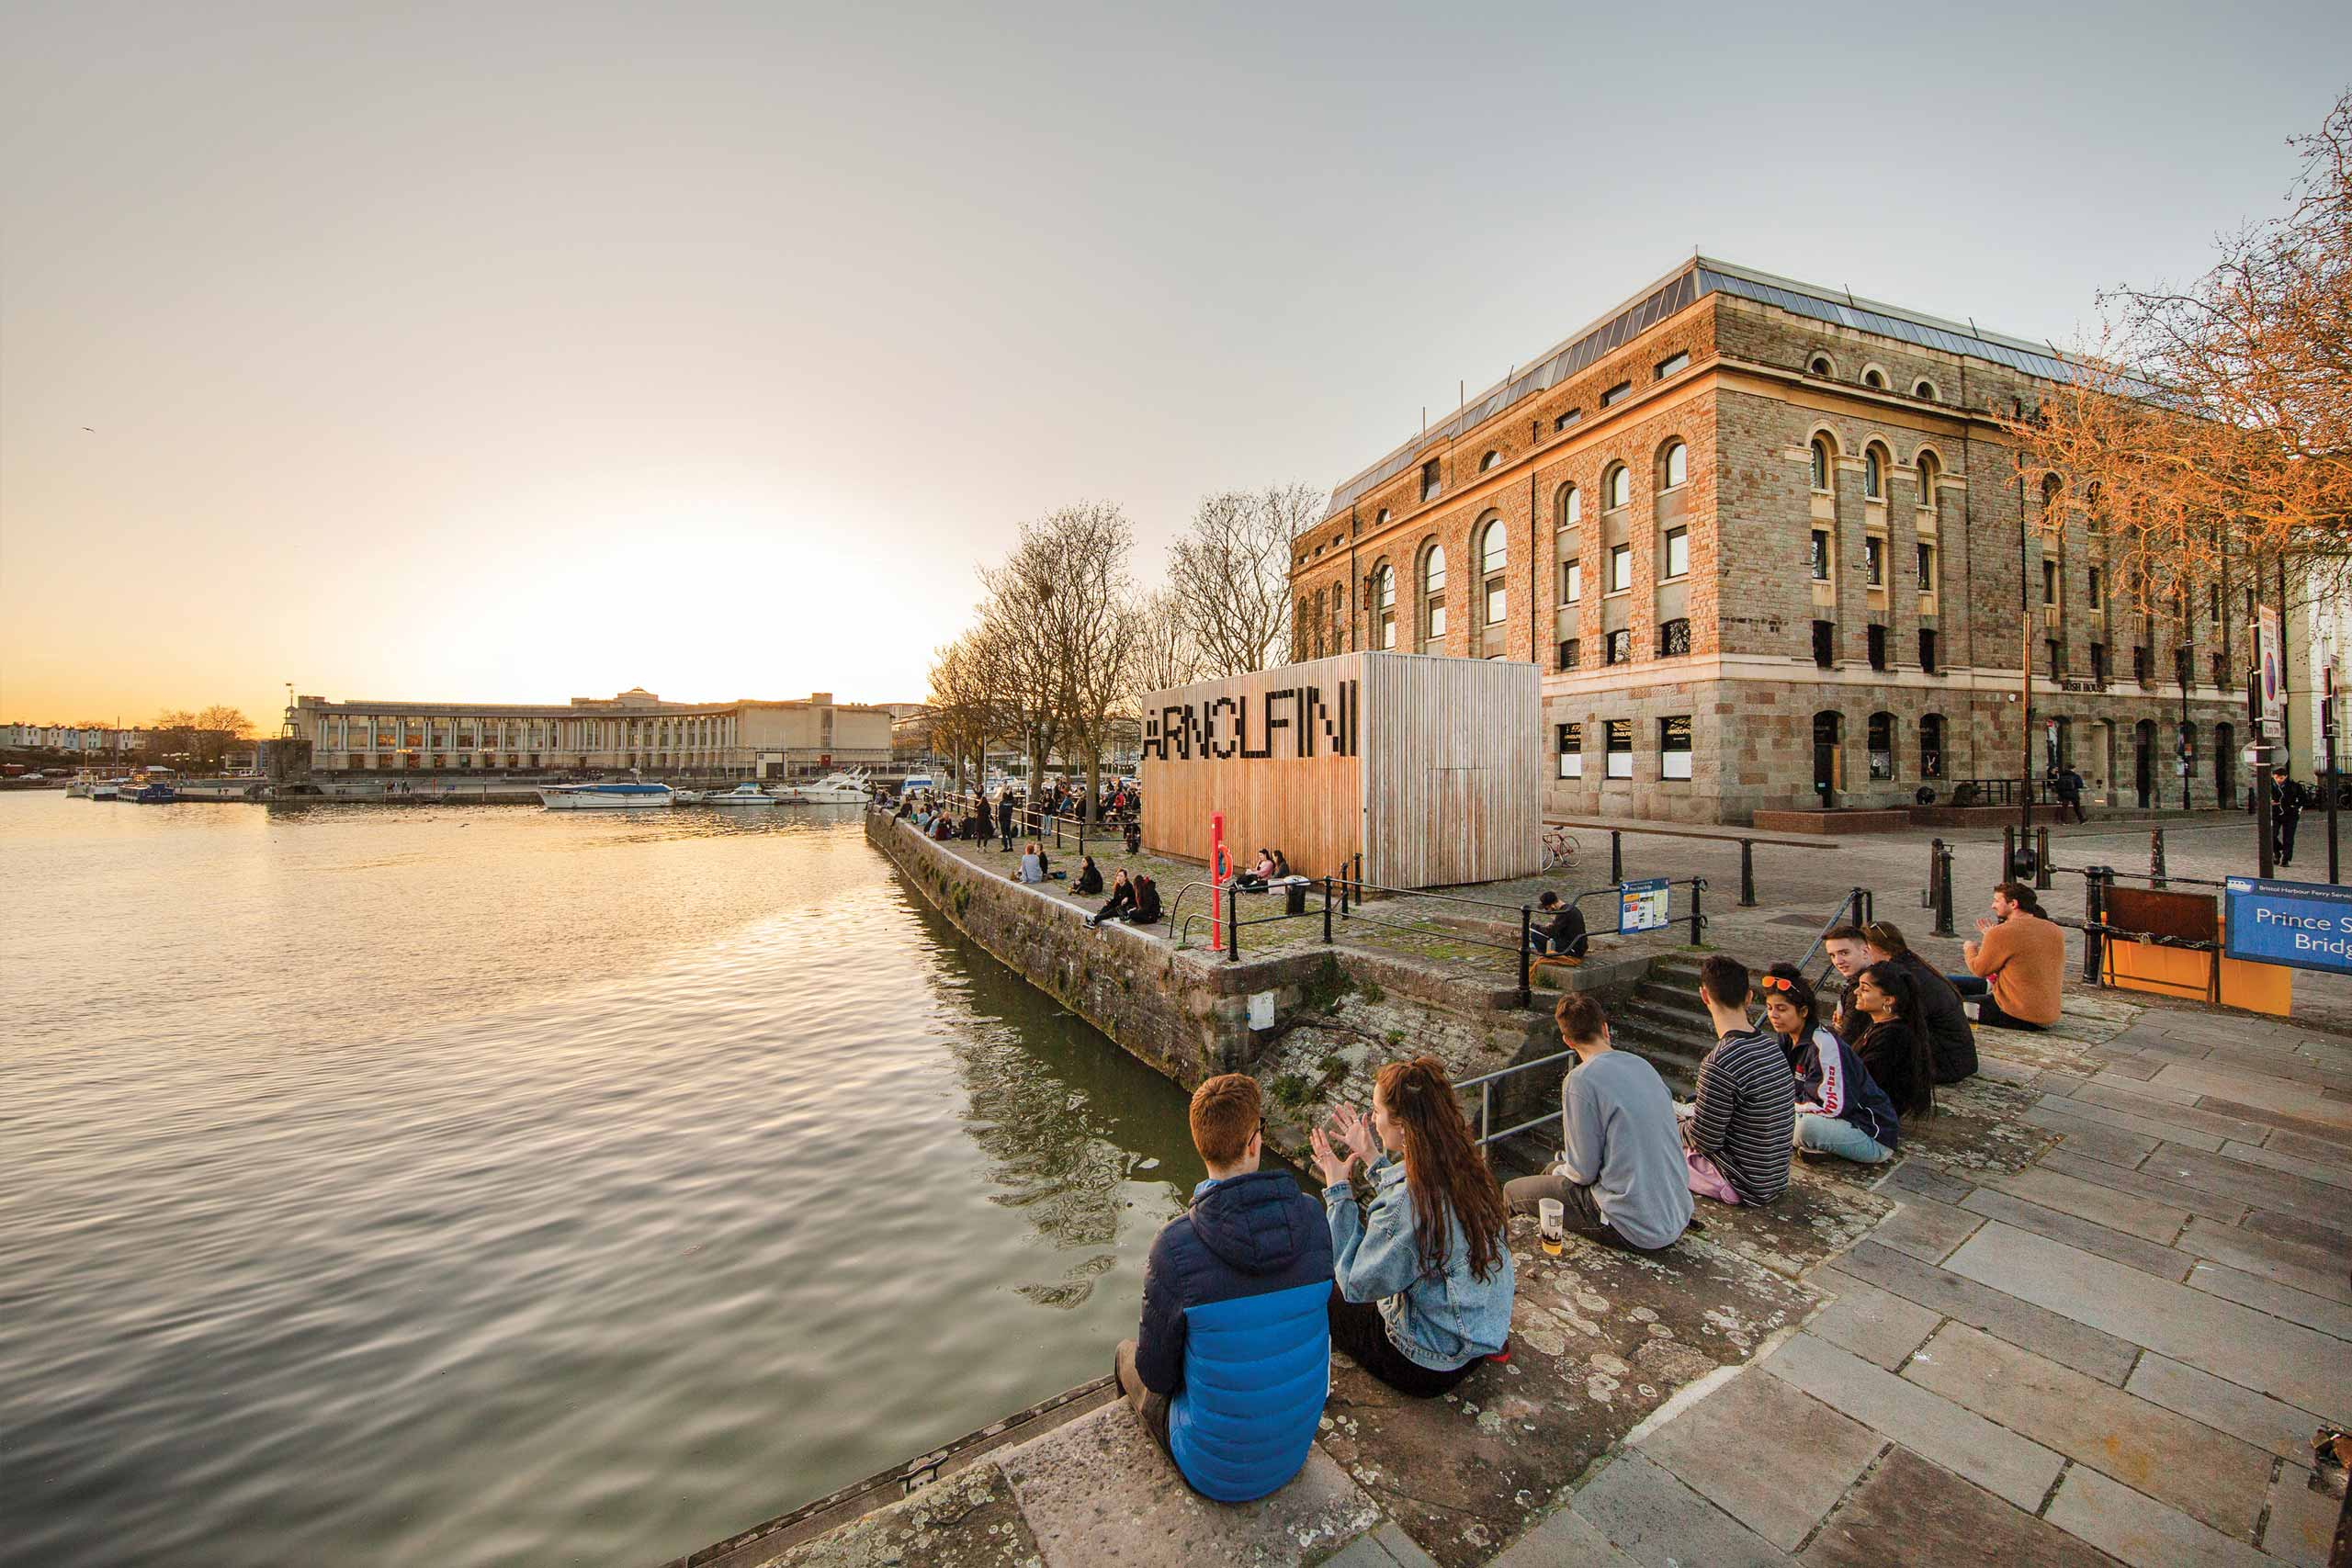 Winde angle view of Arnolfini and he river